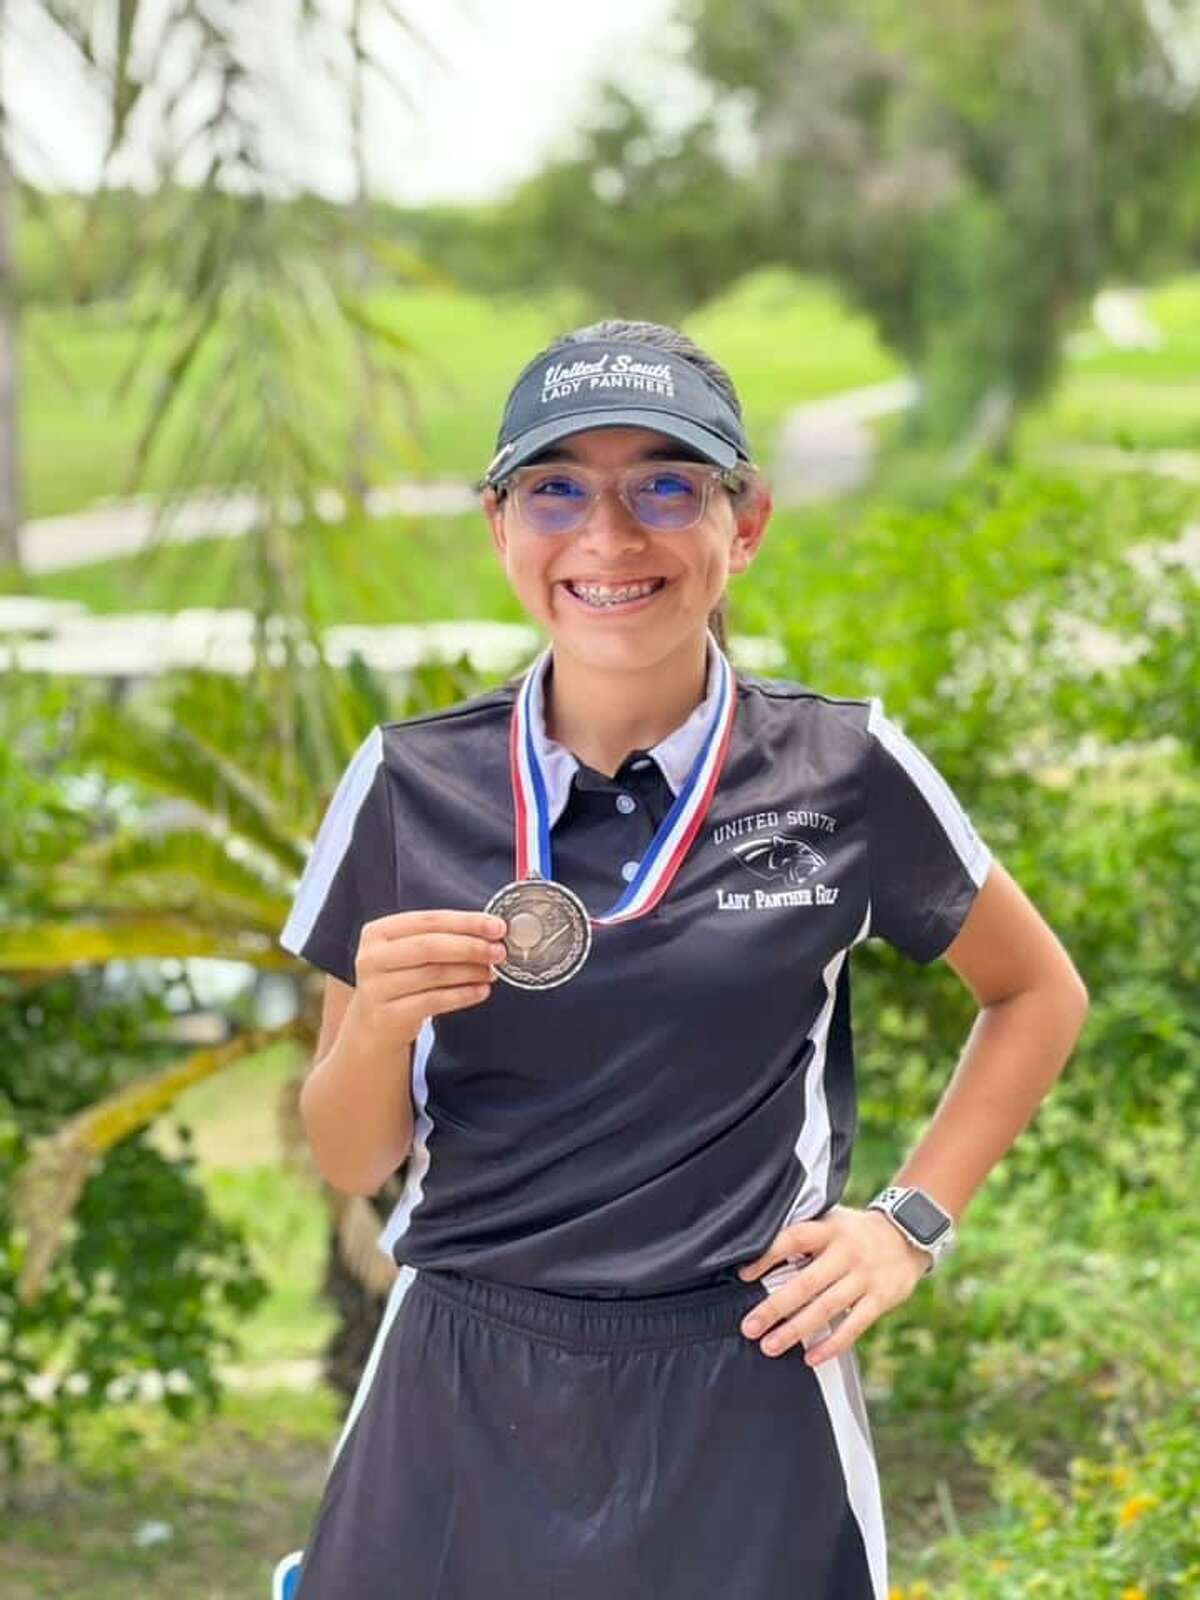 United South freshman golfer Leslie Rodriguez finished in third place at her first high school tournament.